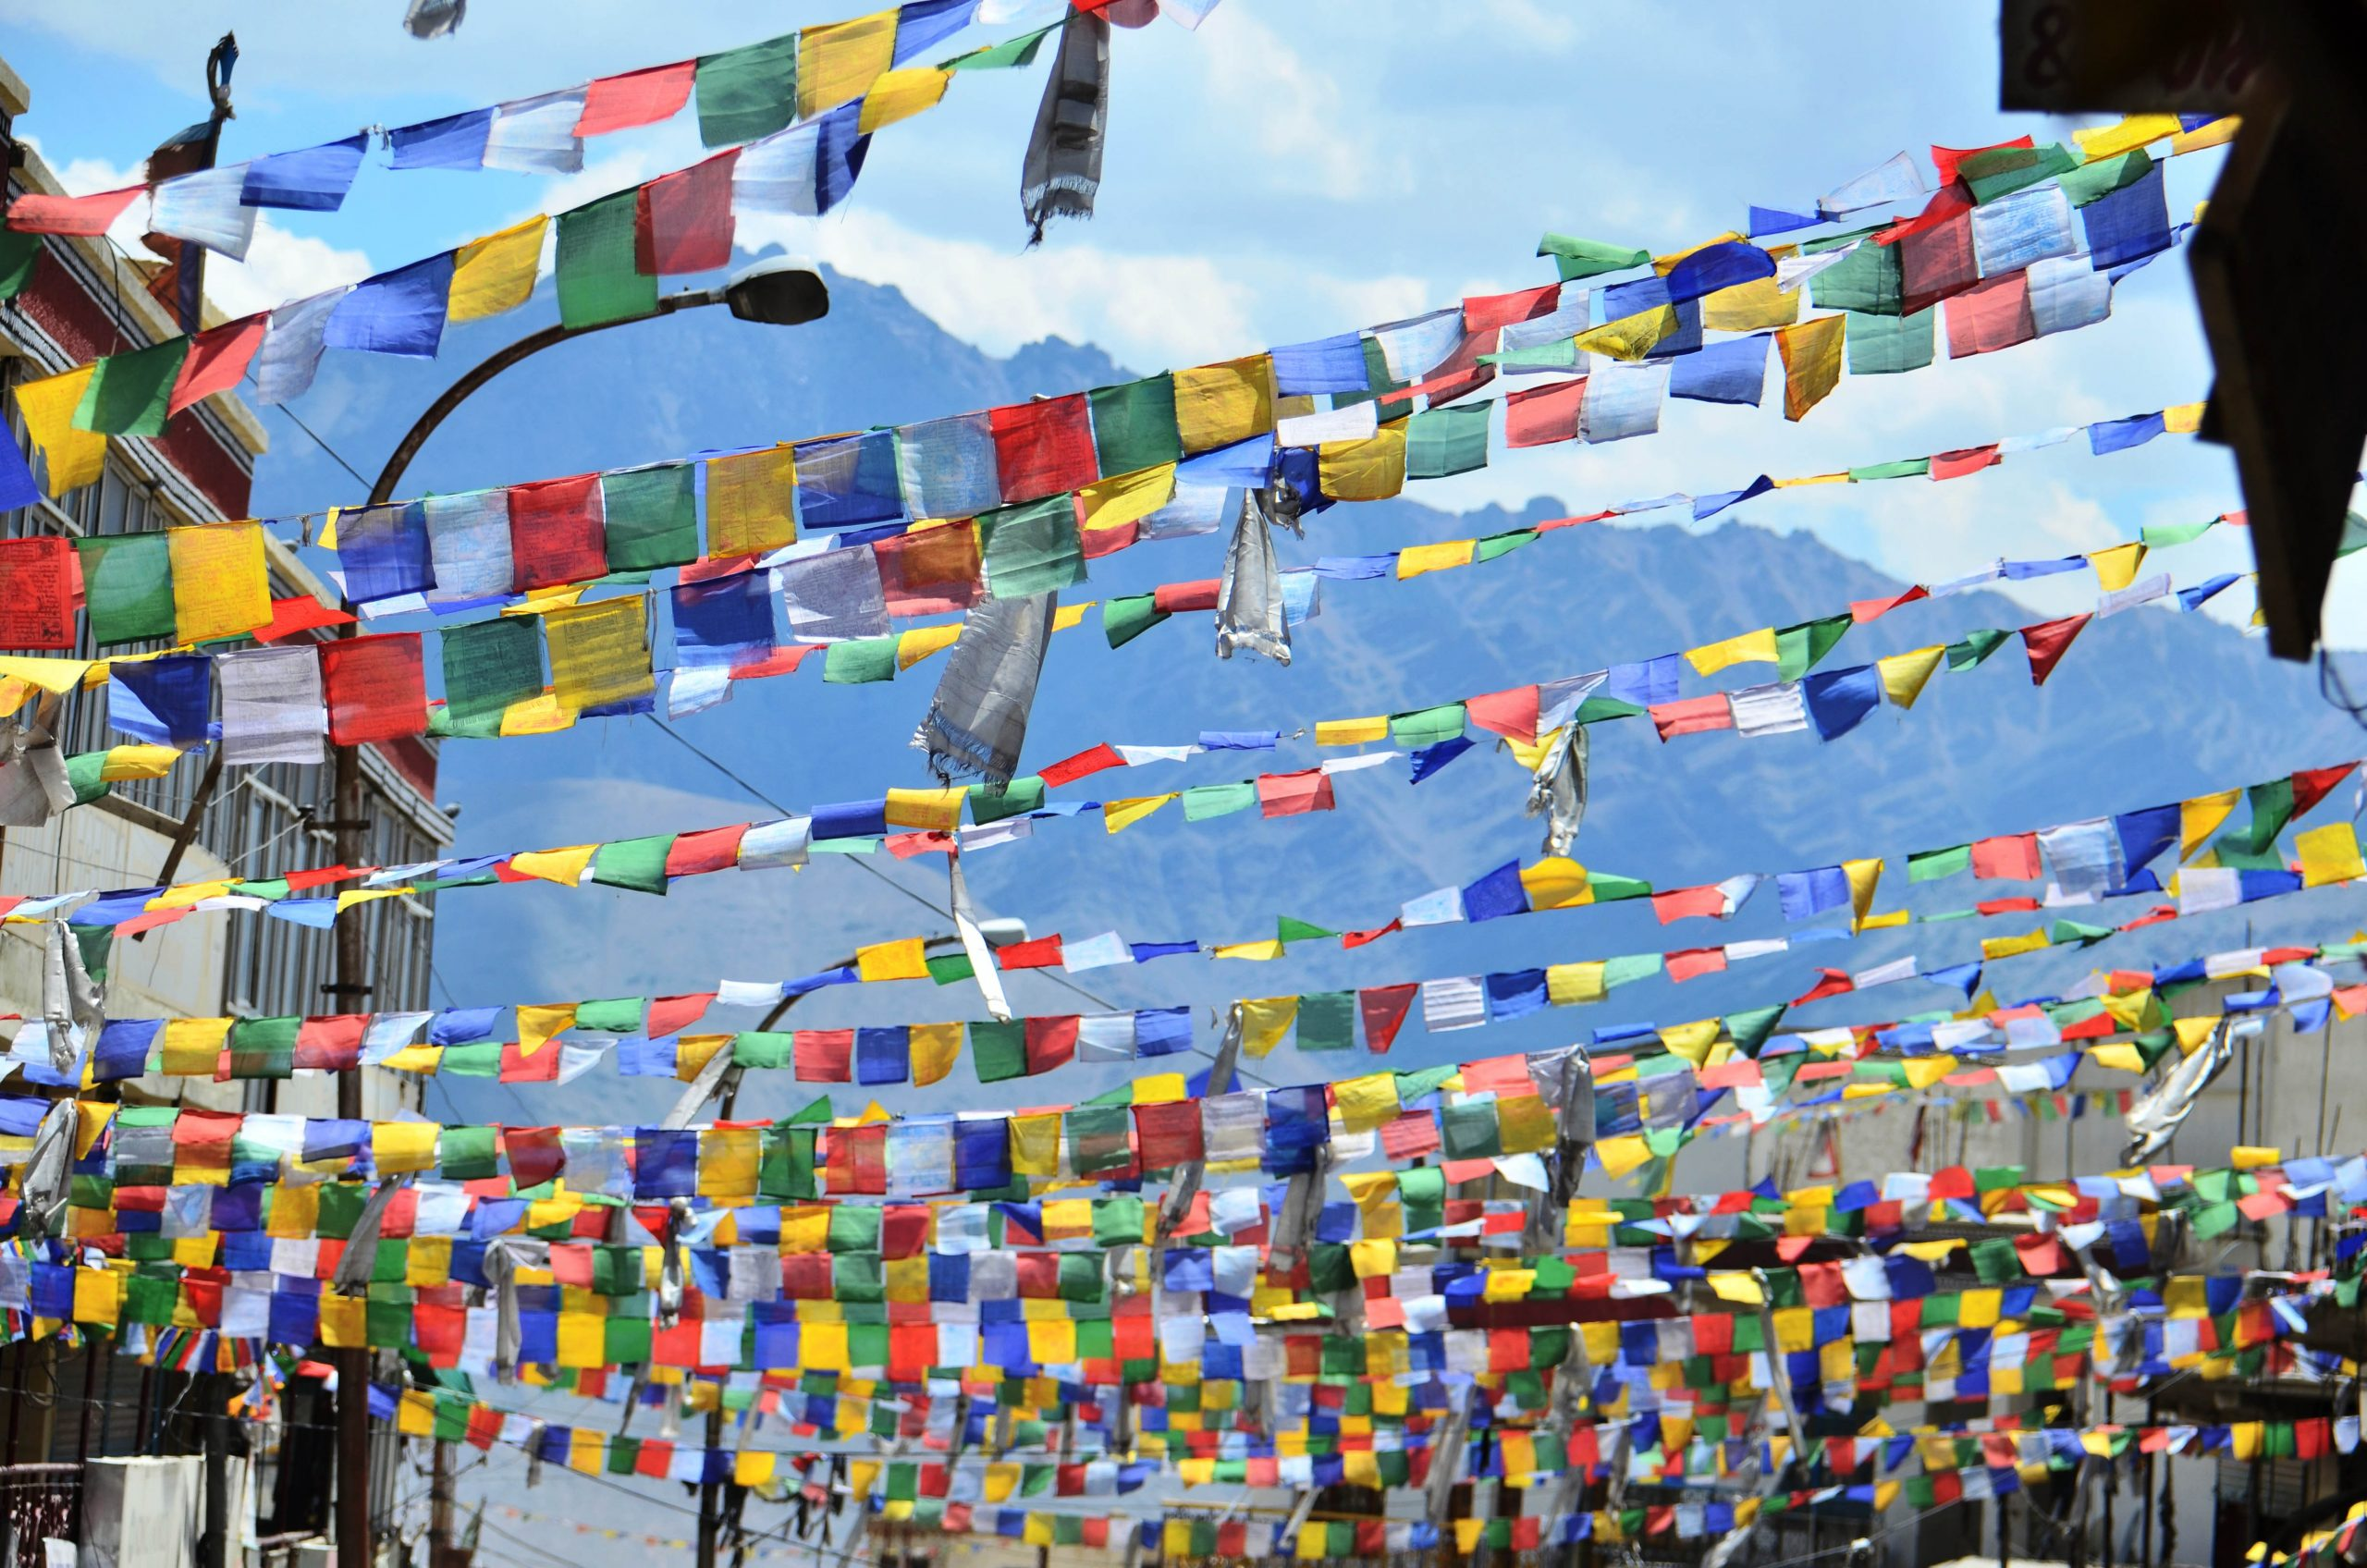 Buddhist flags in a town